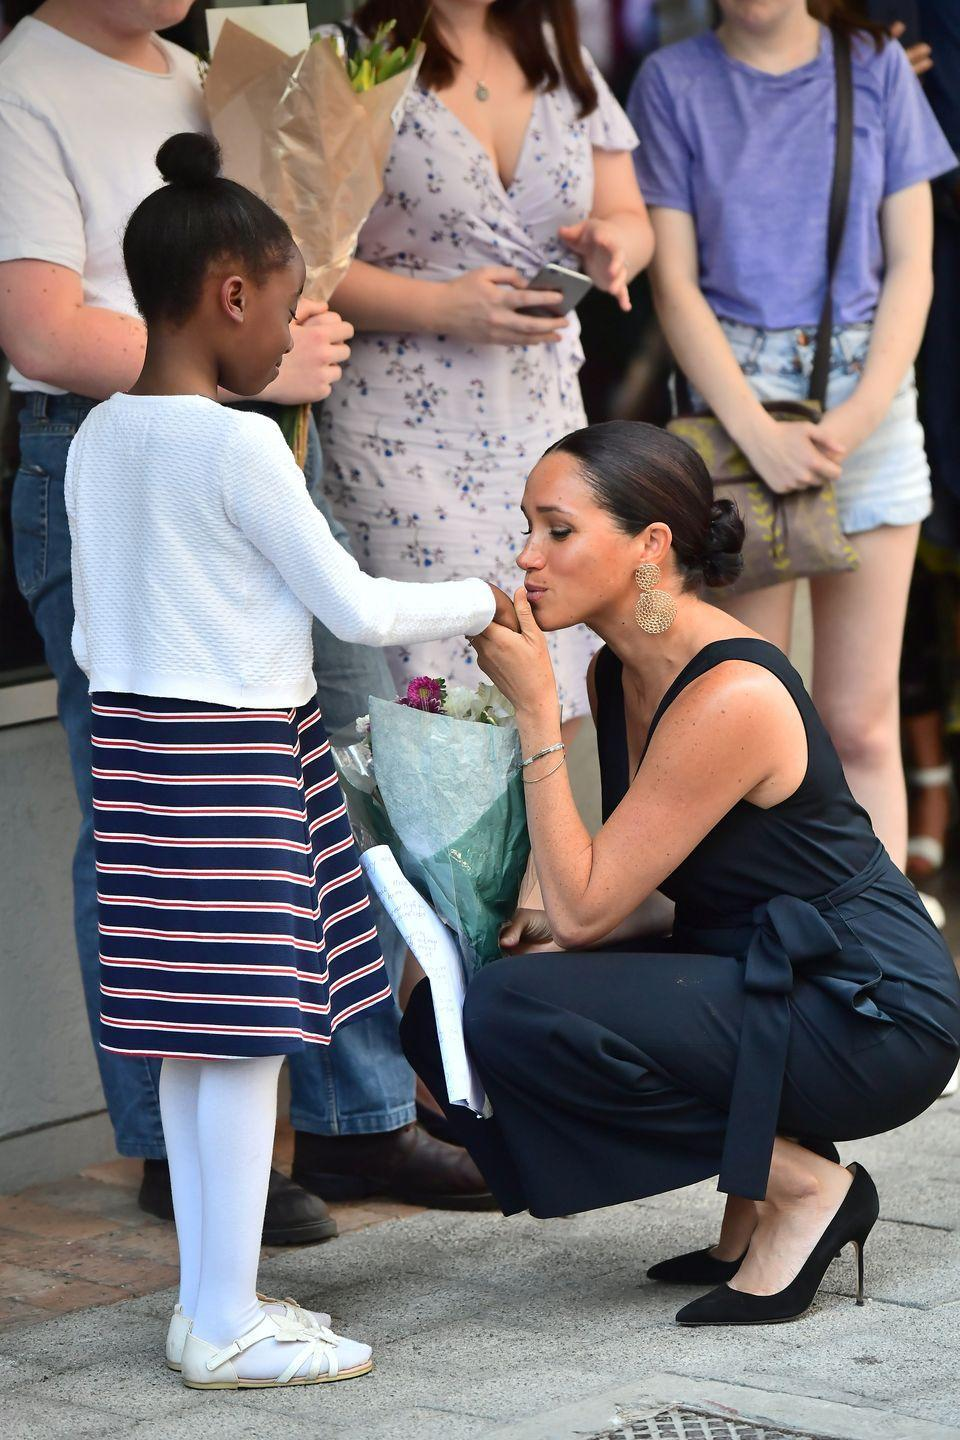 <p>While on tour in South Africa, Meghan kissed a fan's hand when she realized how nervous the little girl was to meet her. Although it was a touching gesture, some thought it broke royal protocol. </p>